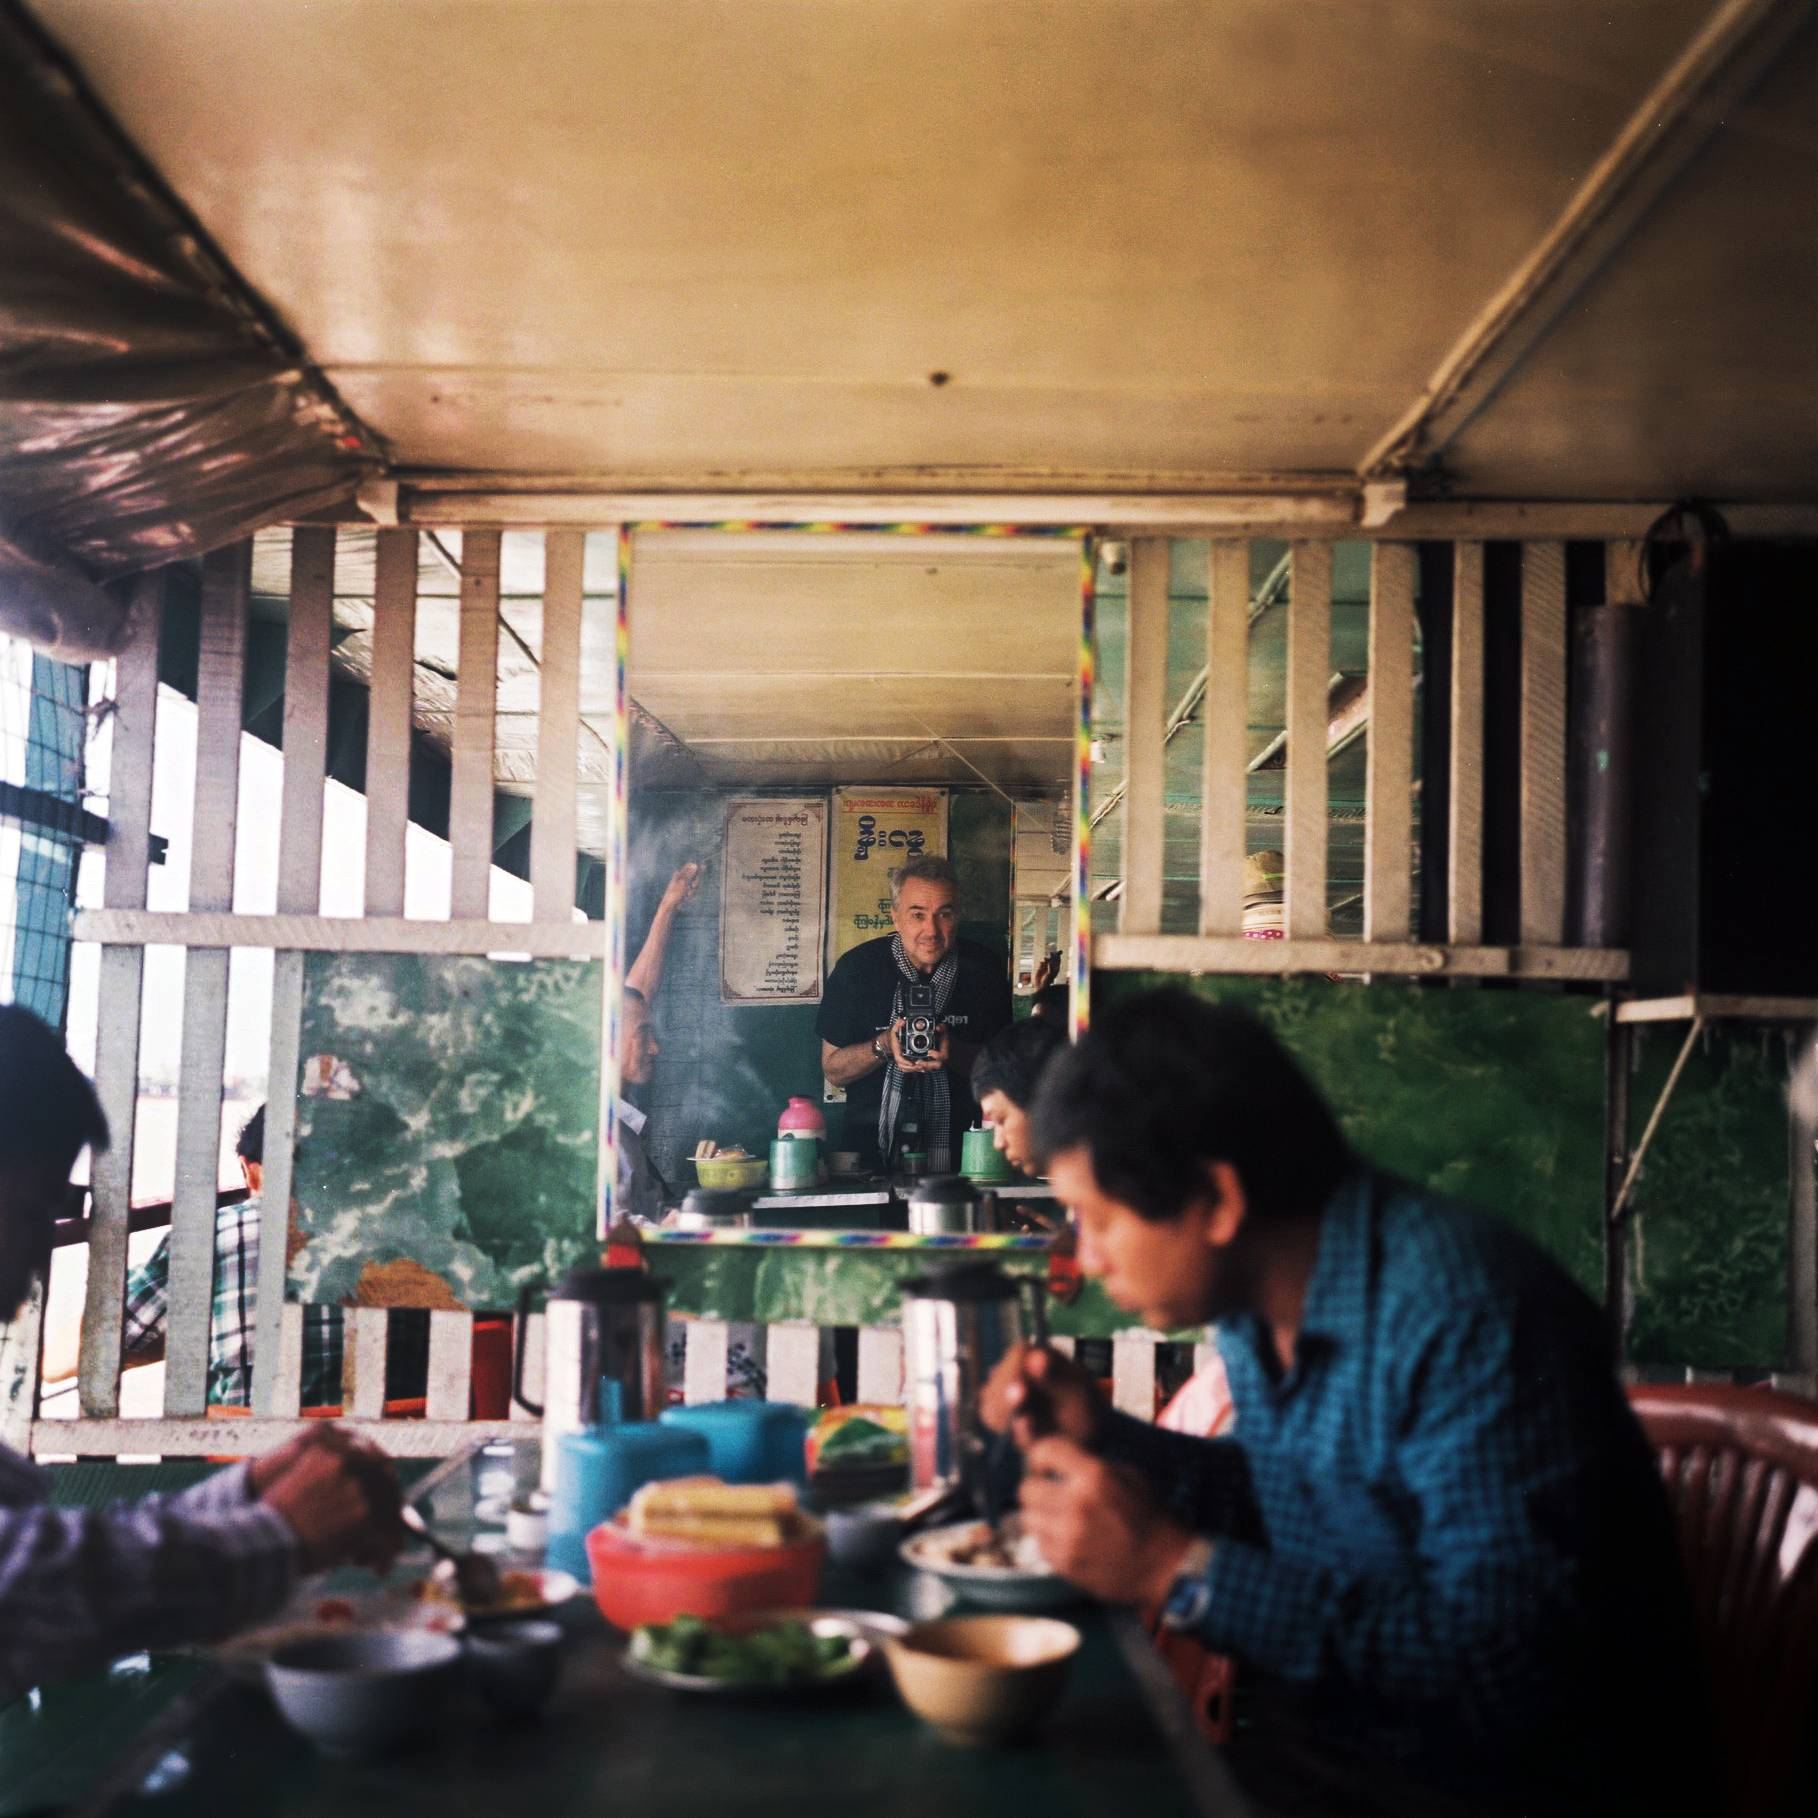 Jack Picone (self-portrait) with Rollei. Crossing the Rangoon River. Yangon, Myanmar. 2014